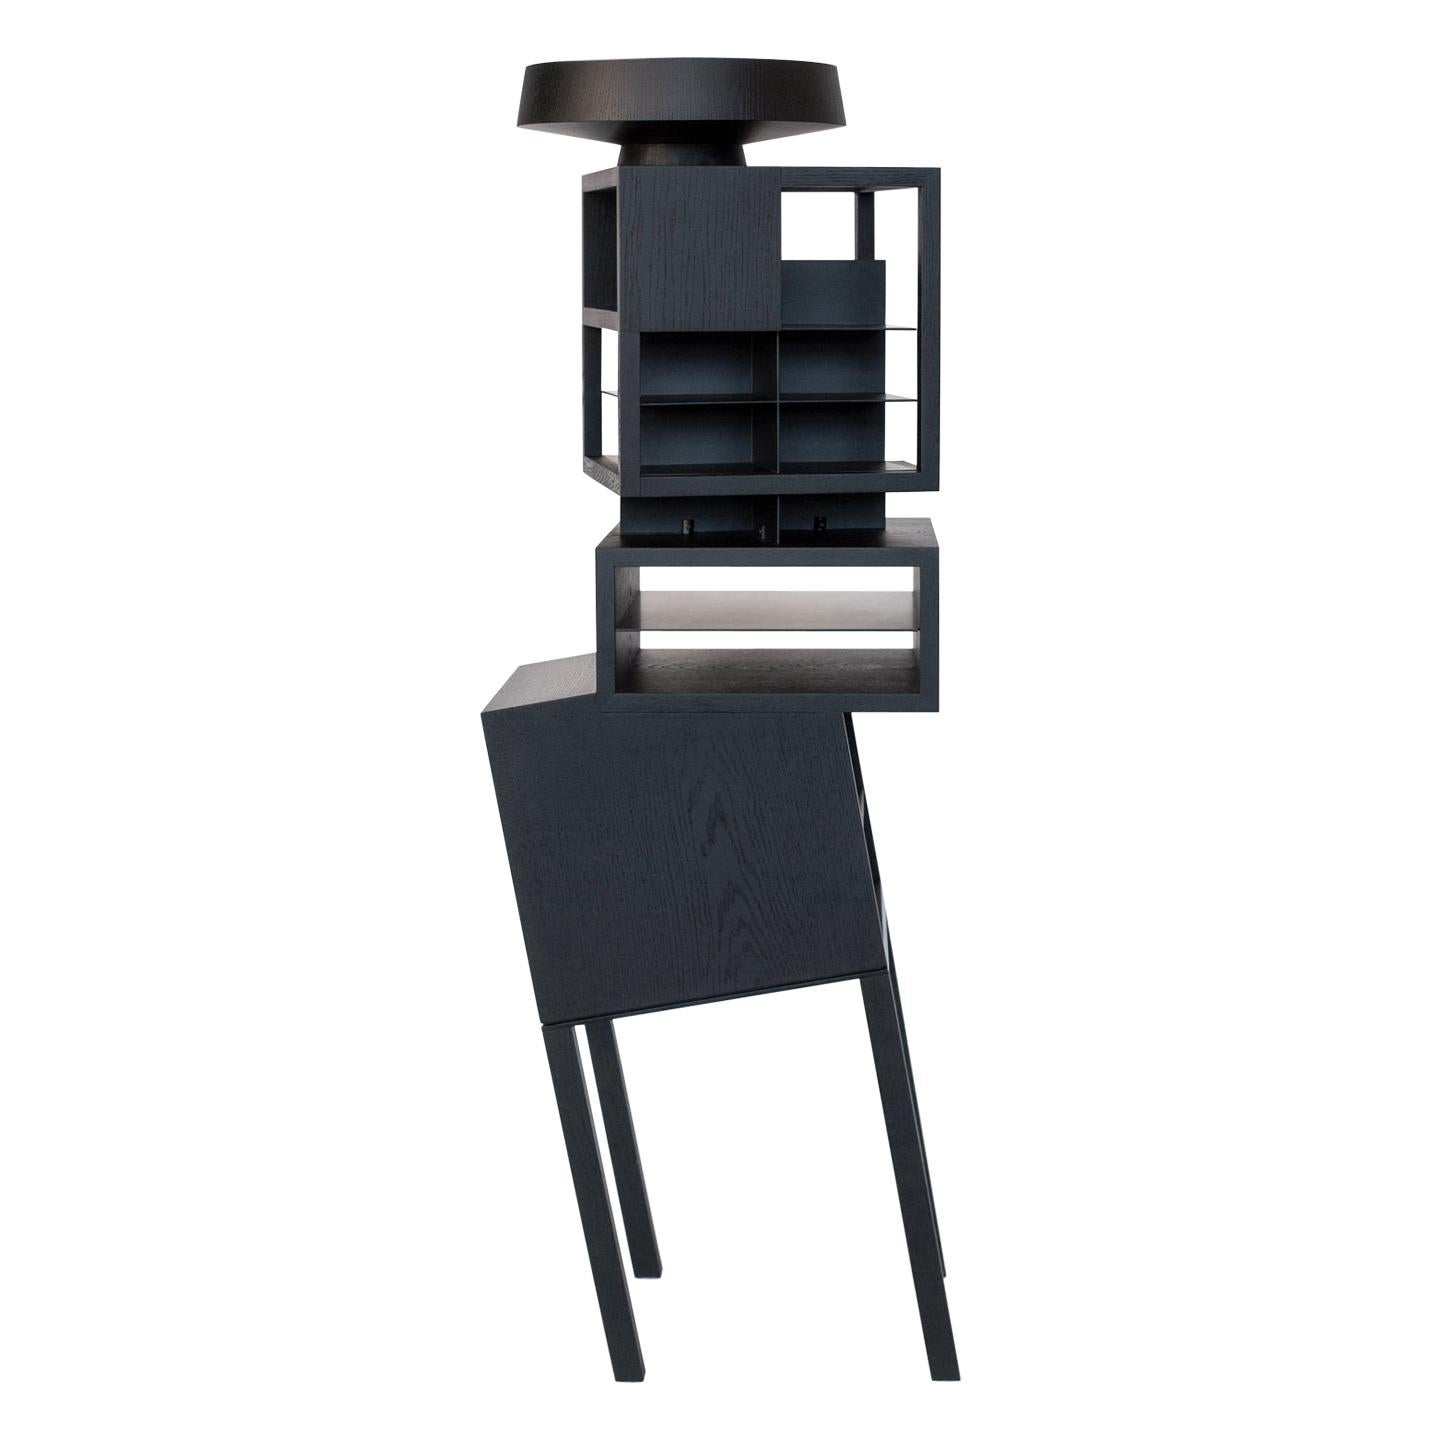 Contemporary Storage or Sculpture Etagere HIRO by Studio1+11, 21st Century